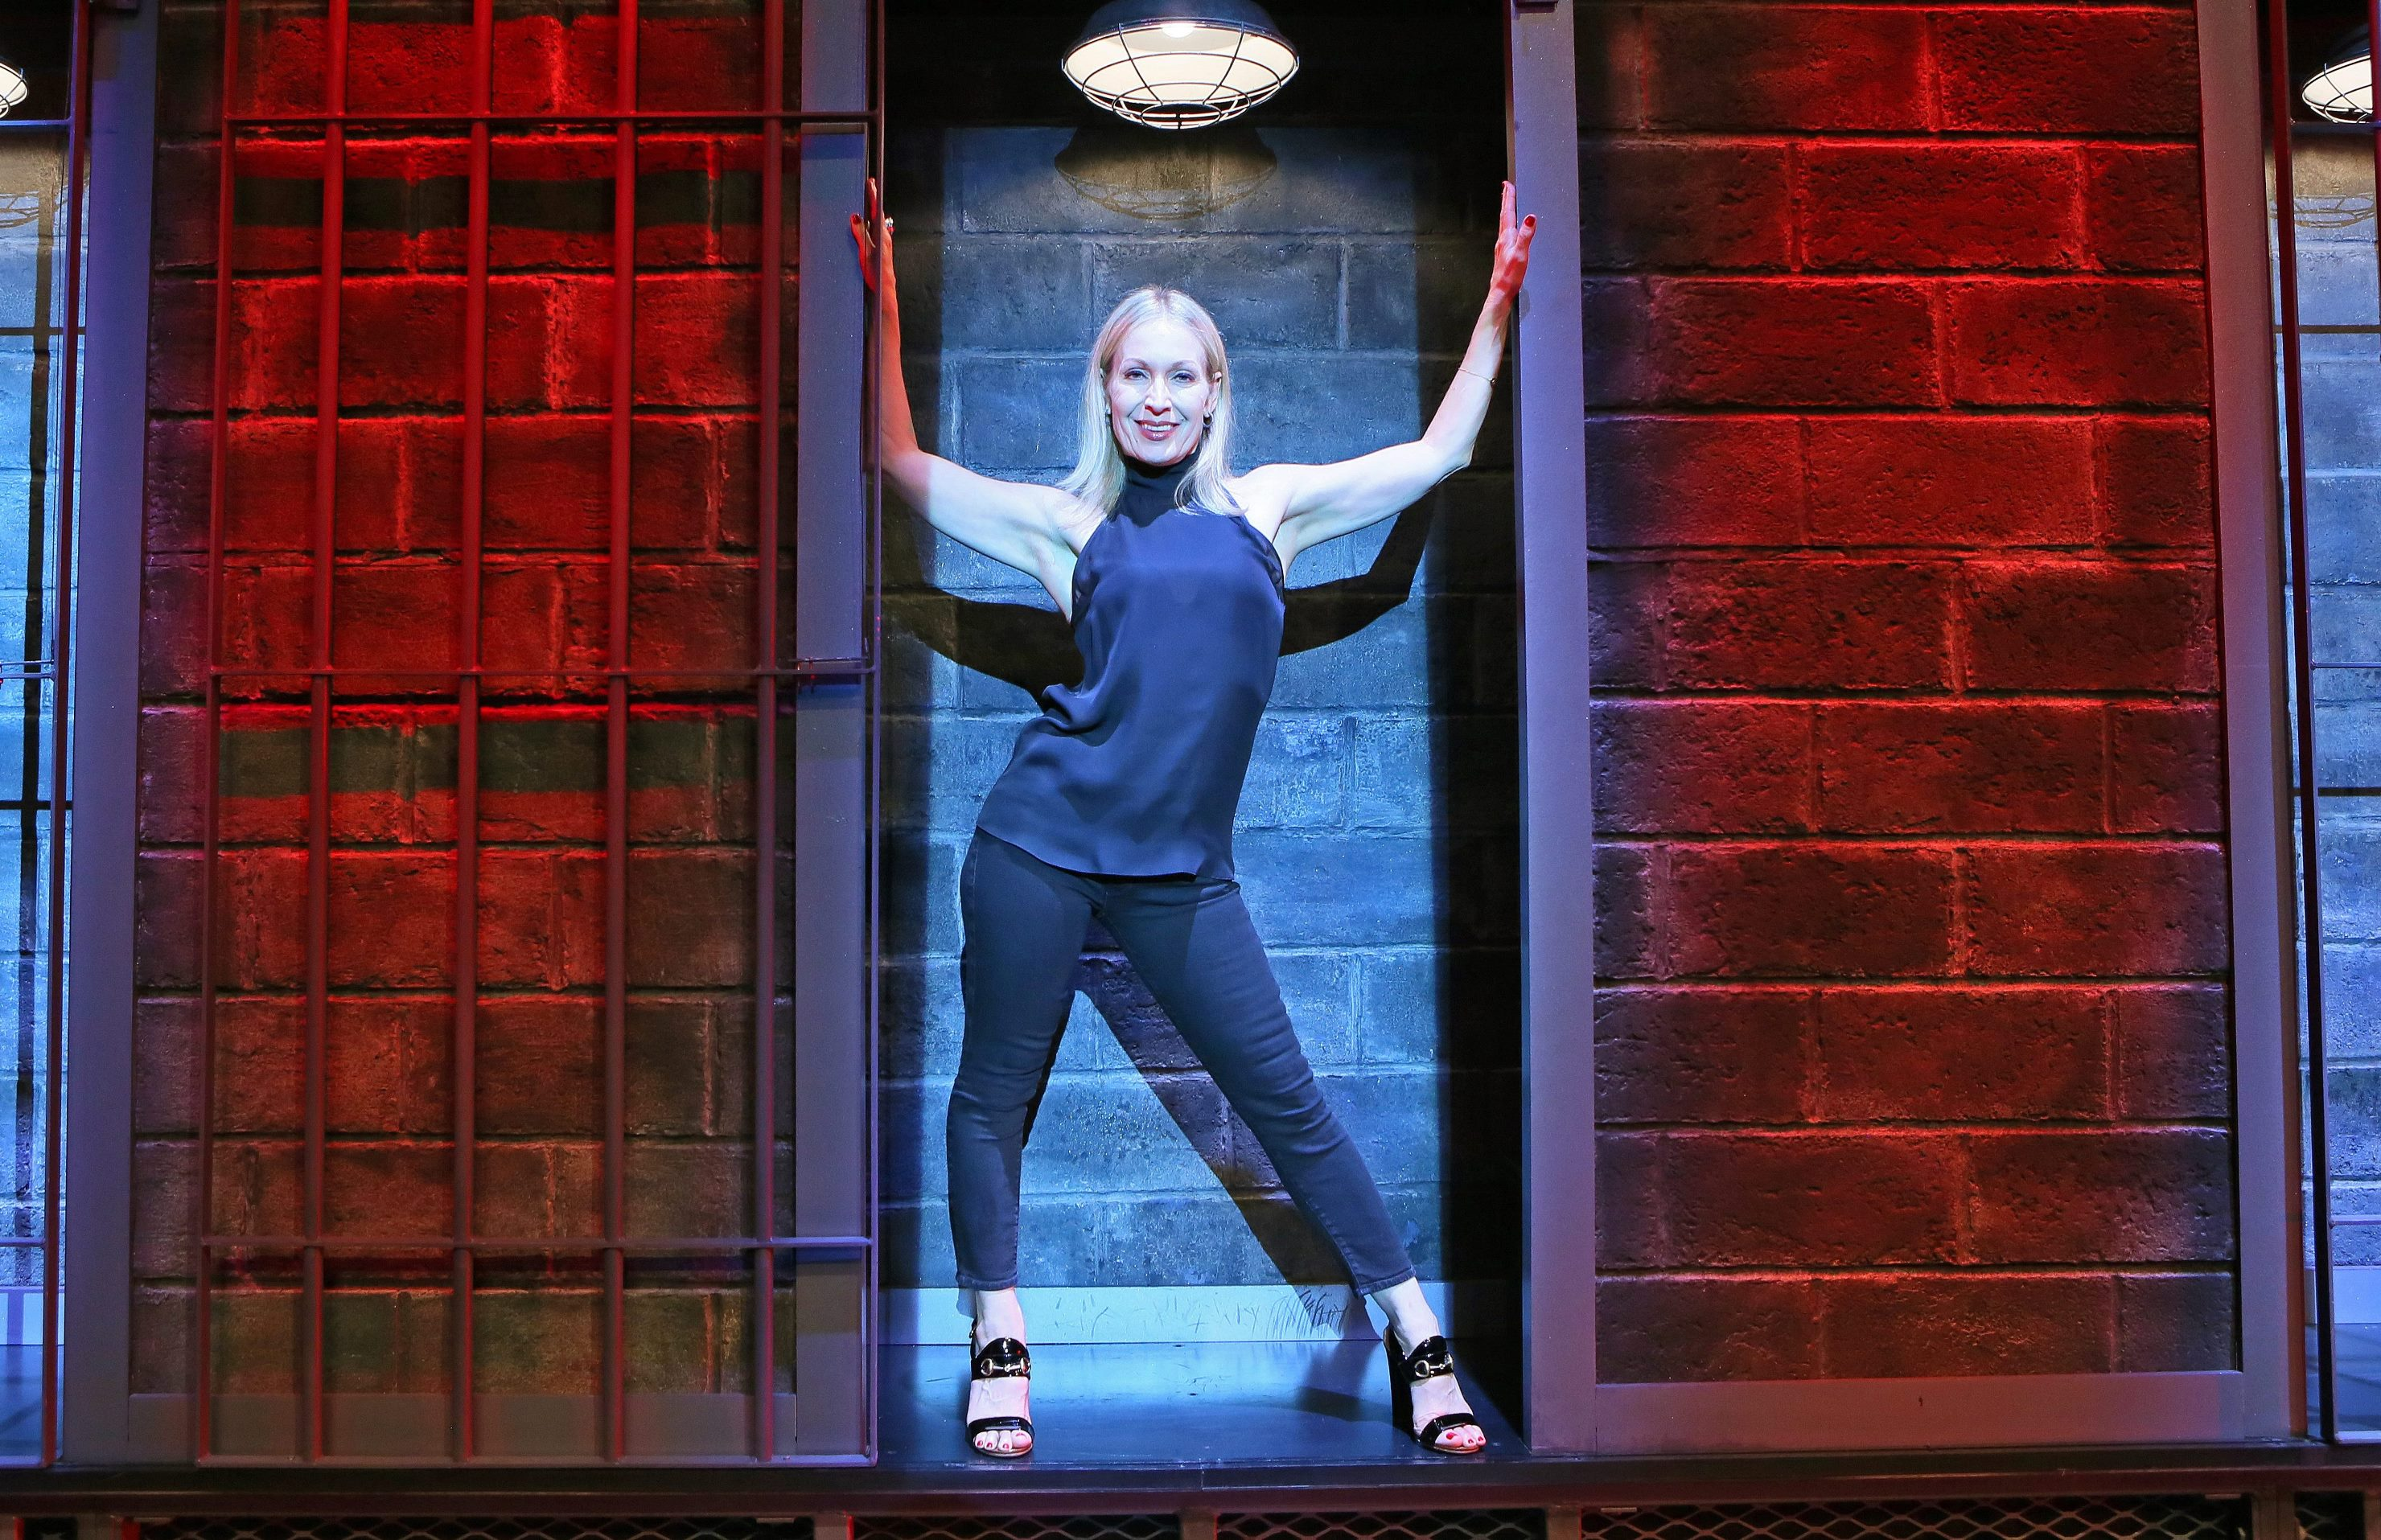 """Buffalo native Marguerite Derricks stands inside a set design from Cell Block Tango (from """"Chicago"""") after a performance of """"ShowStoppers"""" at Wynn hotel-casino in Las Vegas. (Ronda Churchill/Special to The News)"""